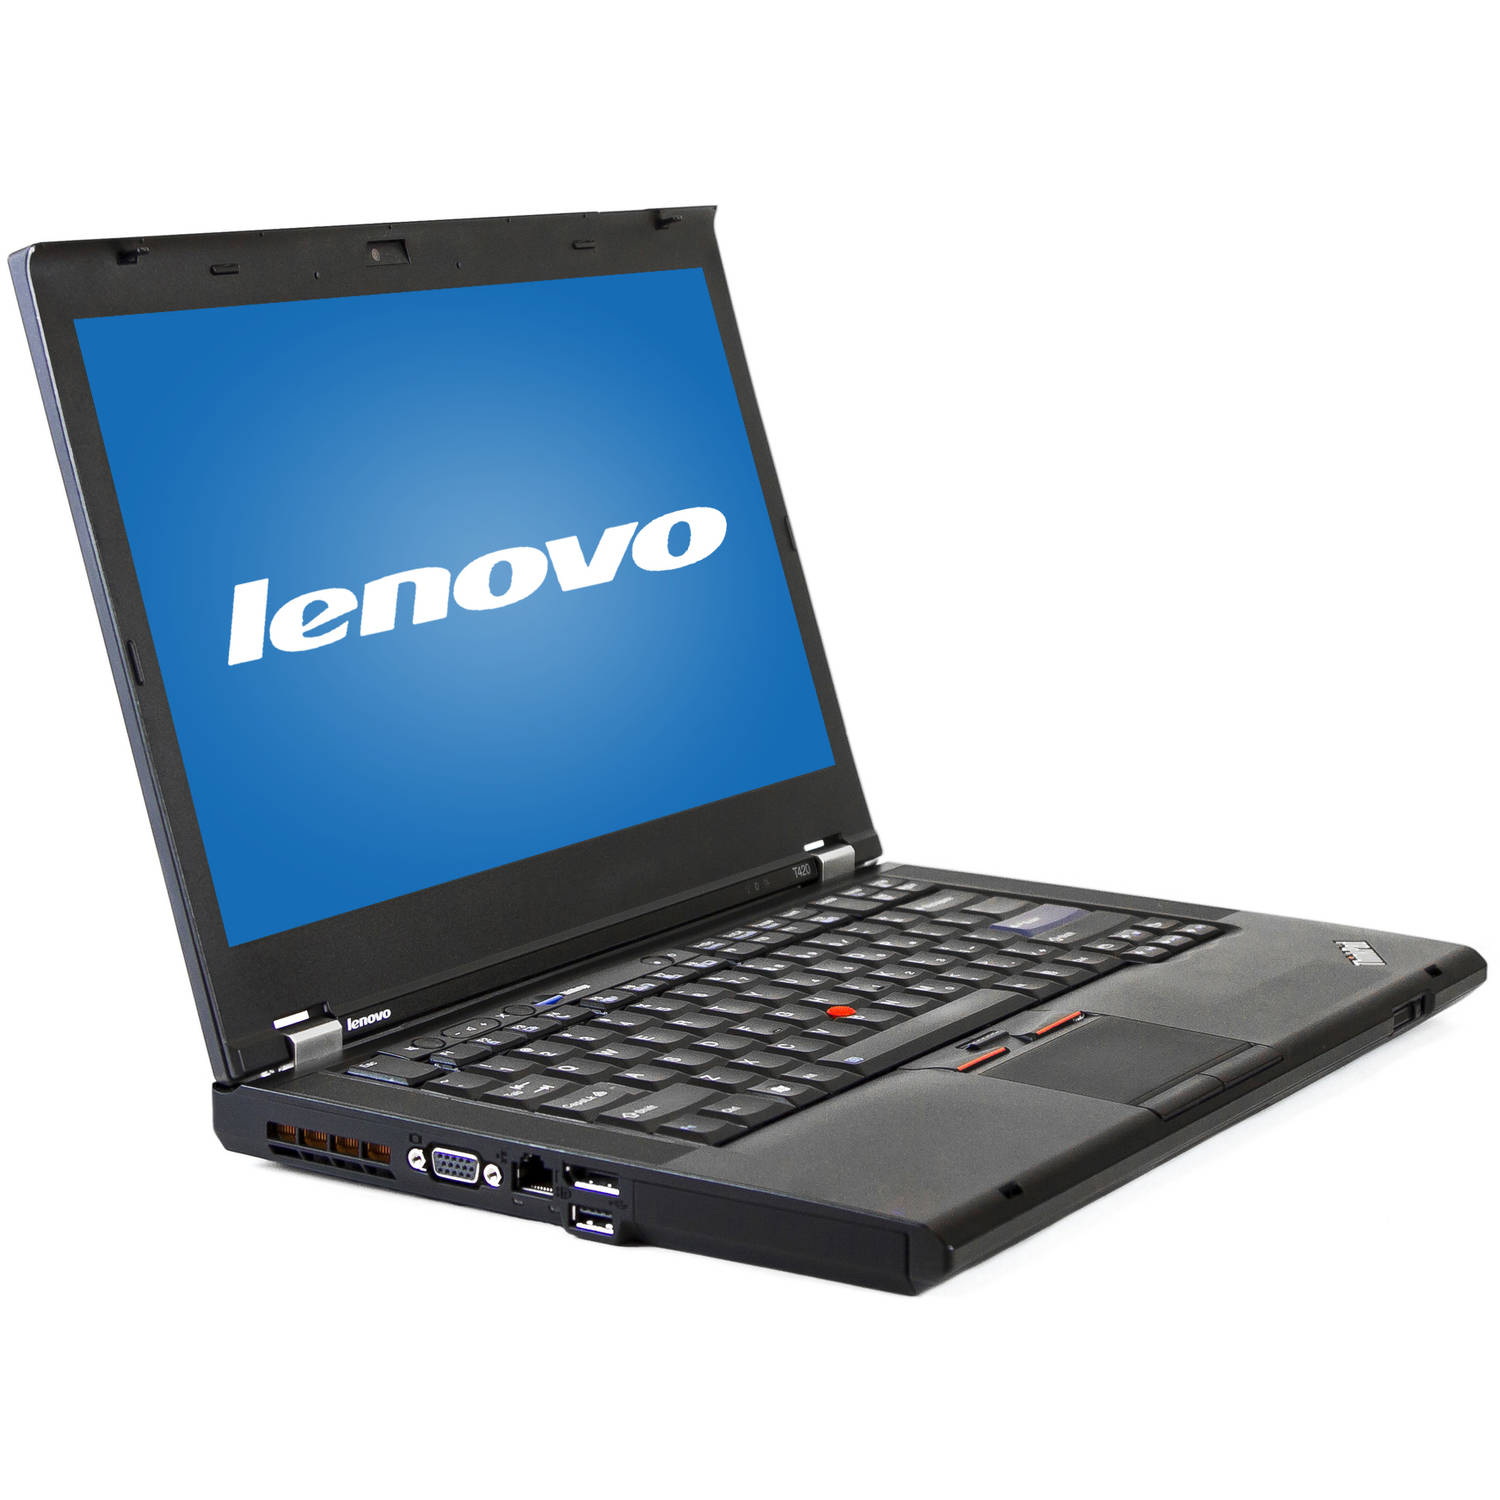 "Refurbished Lenovo Black 14"" T420 Laptop PC with Intel Core i5-2520M Processor, 6GB Memory, 500GB Hard Drive and Windows 7 Professional"